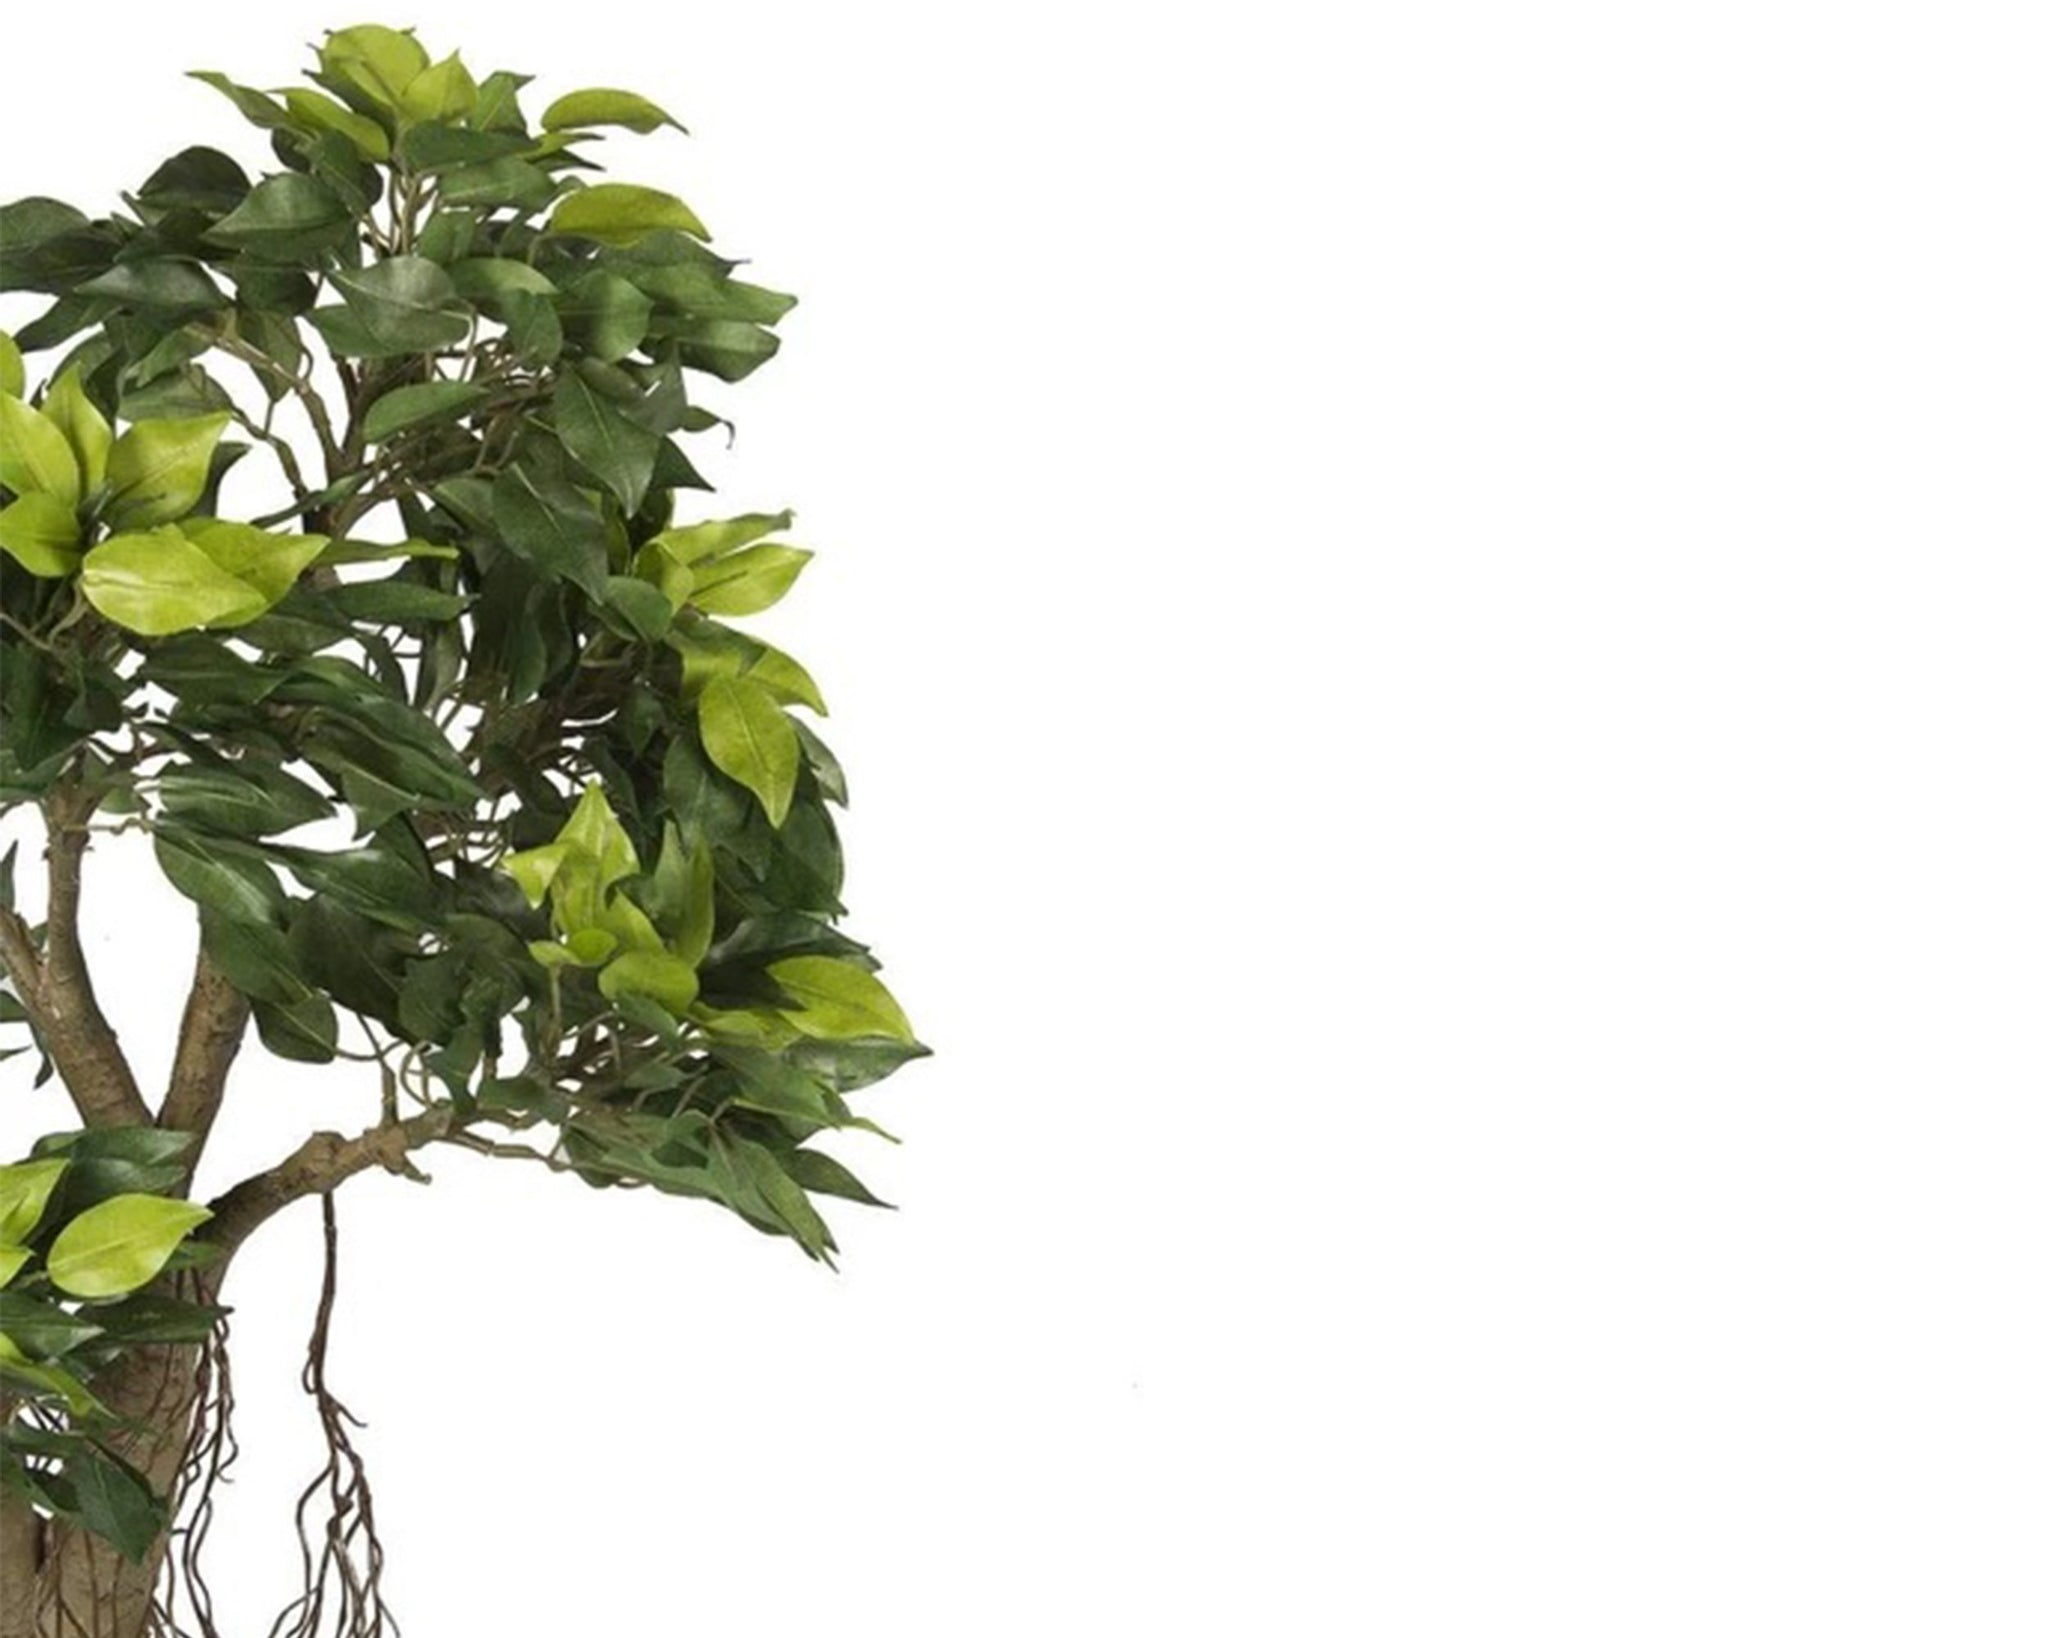 Roll over image to zoom in PolliNation Alluring Artificial Green Ficus Bonsai Plant Without for Home Decor Pot ( L 35 cm x H 55 cm) - Artificial Flowers & Plants - PolliNation